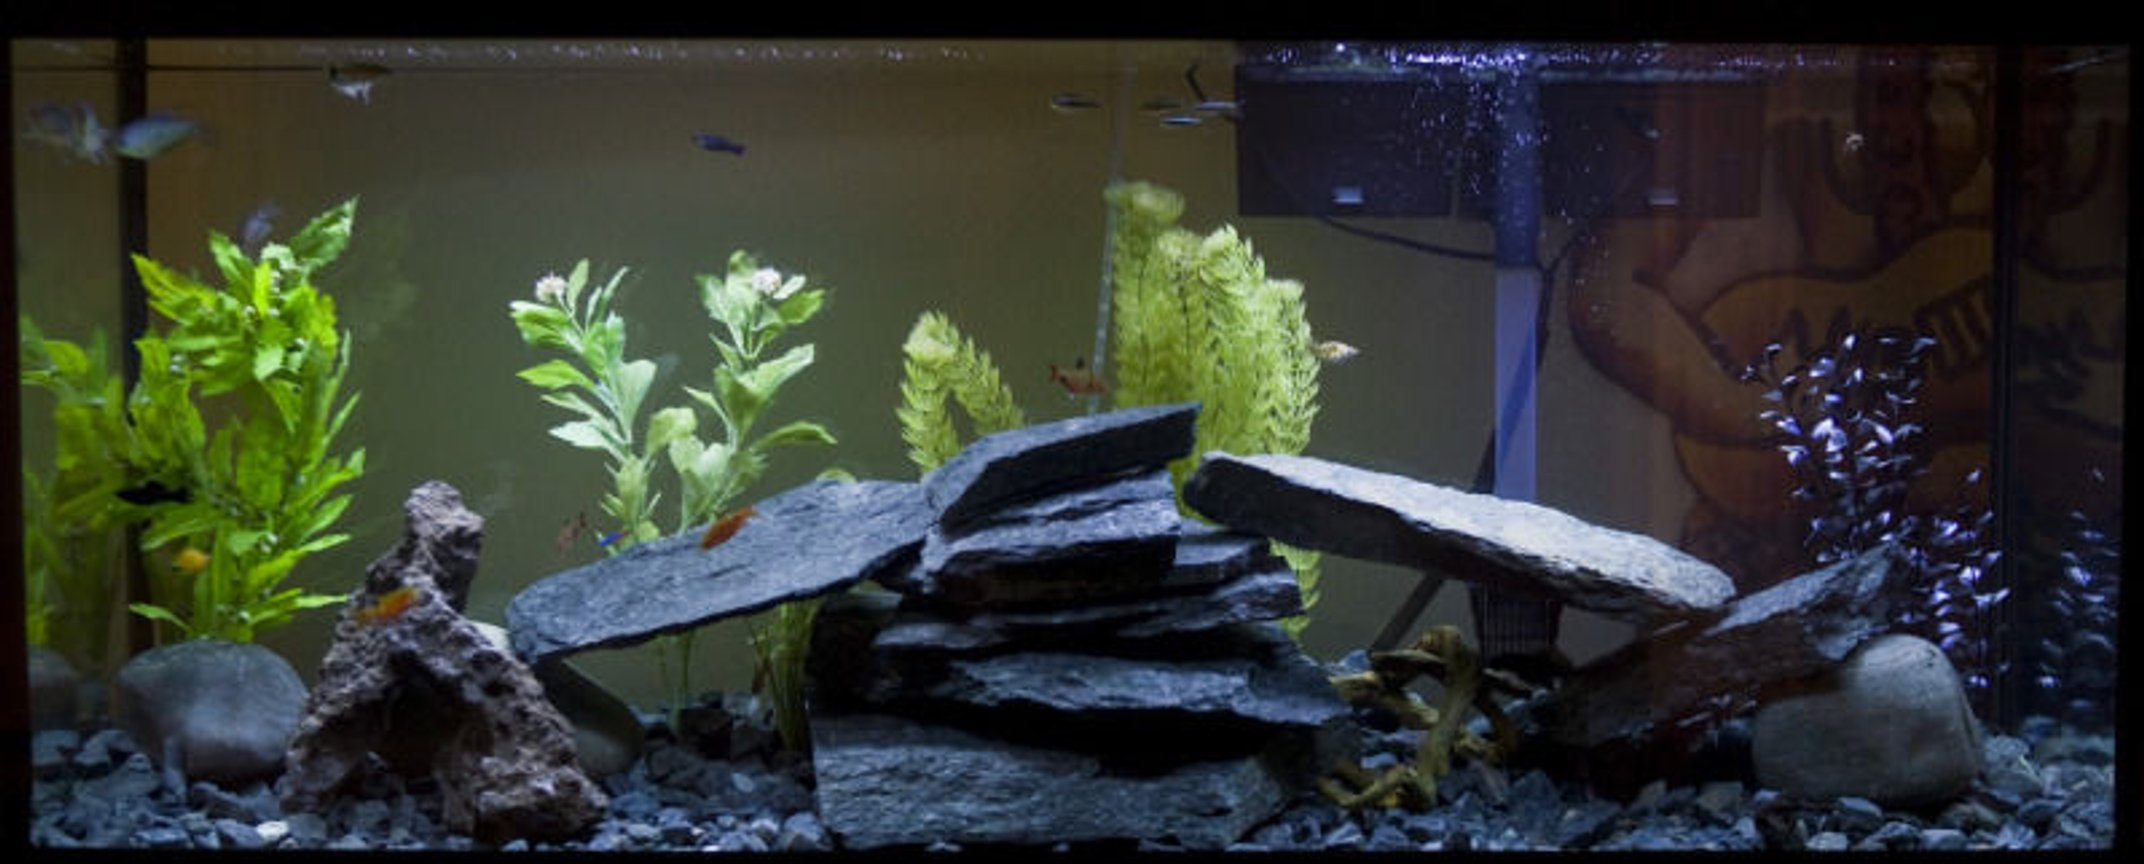 fish tank picture - 1 Blue Grommie 4 Black Molly 2 Balloon Molly 2 Sucker Mouth Catfish 5 Flame Tetra 5 Serpae Tetra 5 Neon Tetra 5 Striped Tetra 2 Red Eye Tetra I got all the rocks and only spent nine dollars. All the plants are fake but I'm going all real plant life very soon Lol yes those are Stainless Steel Brass Knuckles in my tank. Its a long story......